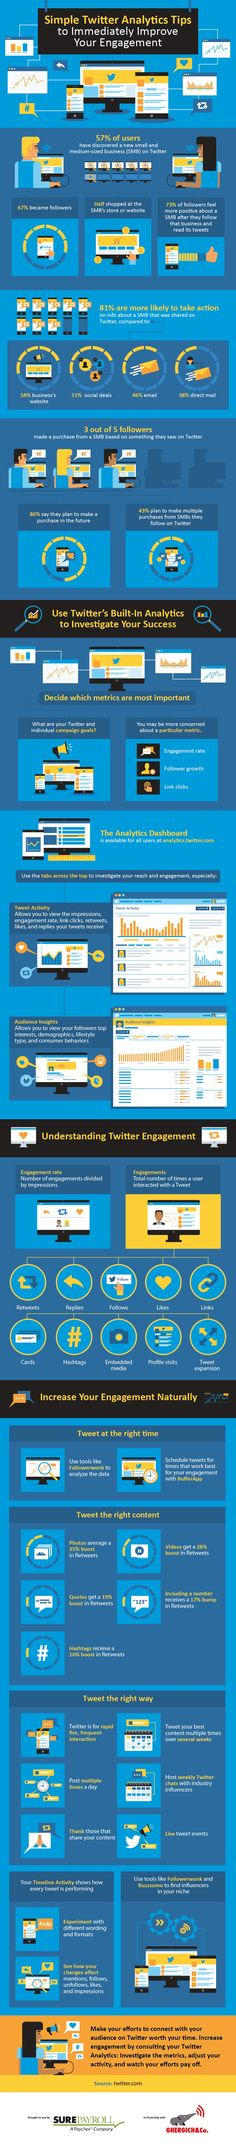 Simple Twitter Analytics Tips to Immediately Improve Your Engagement [Infographic]